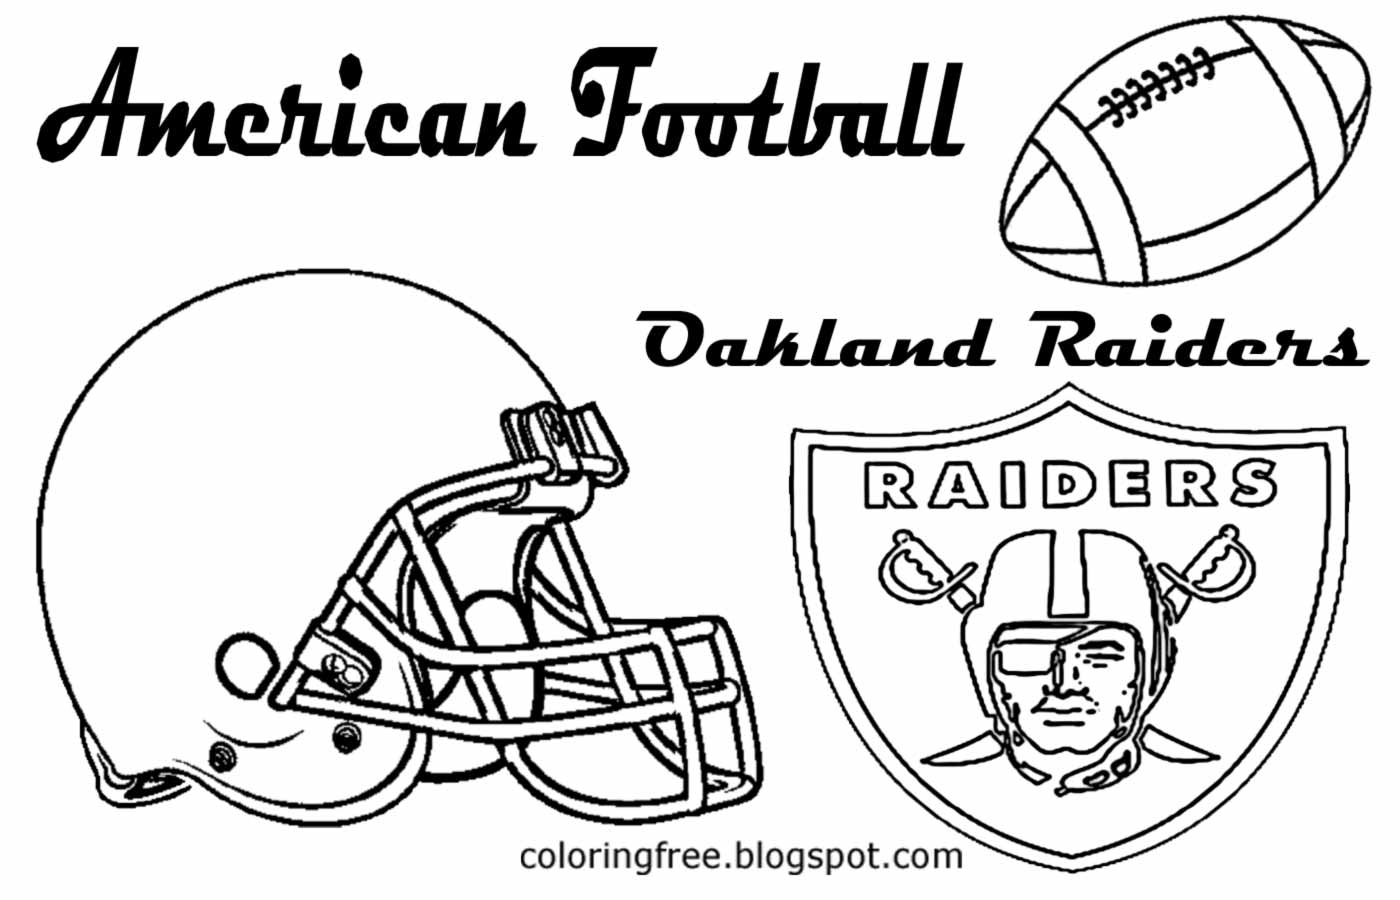 Free Coloring Pages Printable Pictures To Color Kids Drawing Ideas Printable American Football